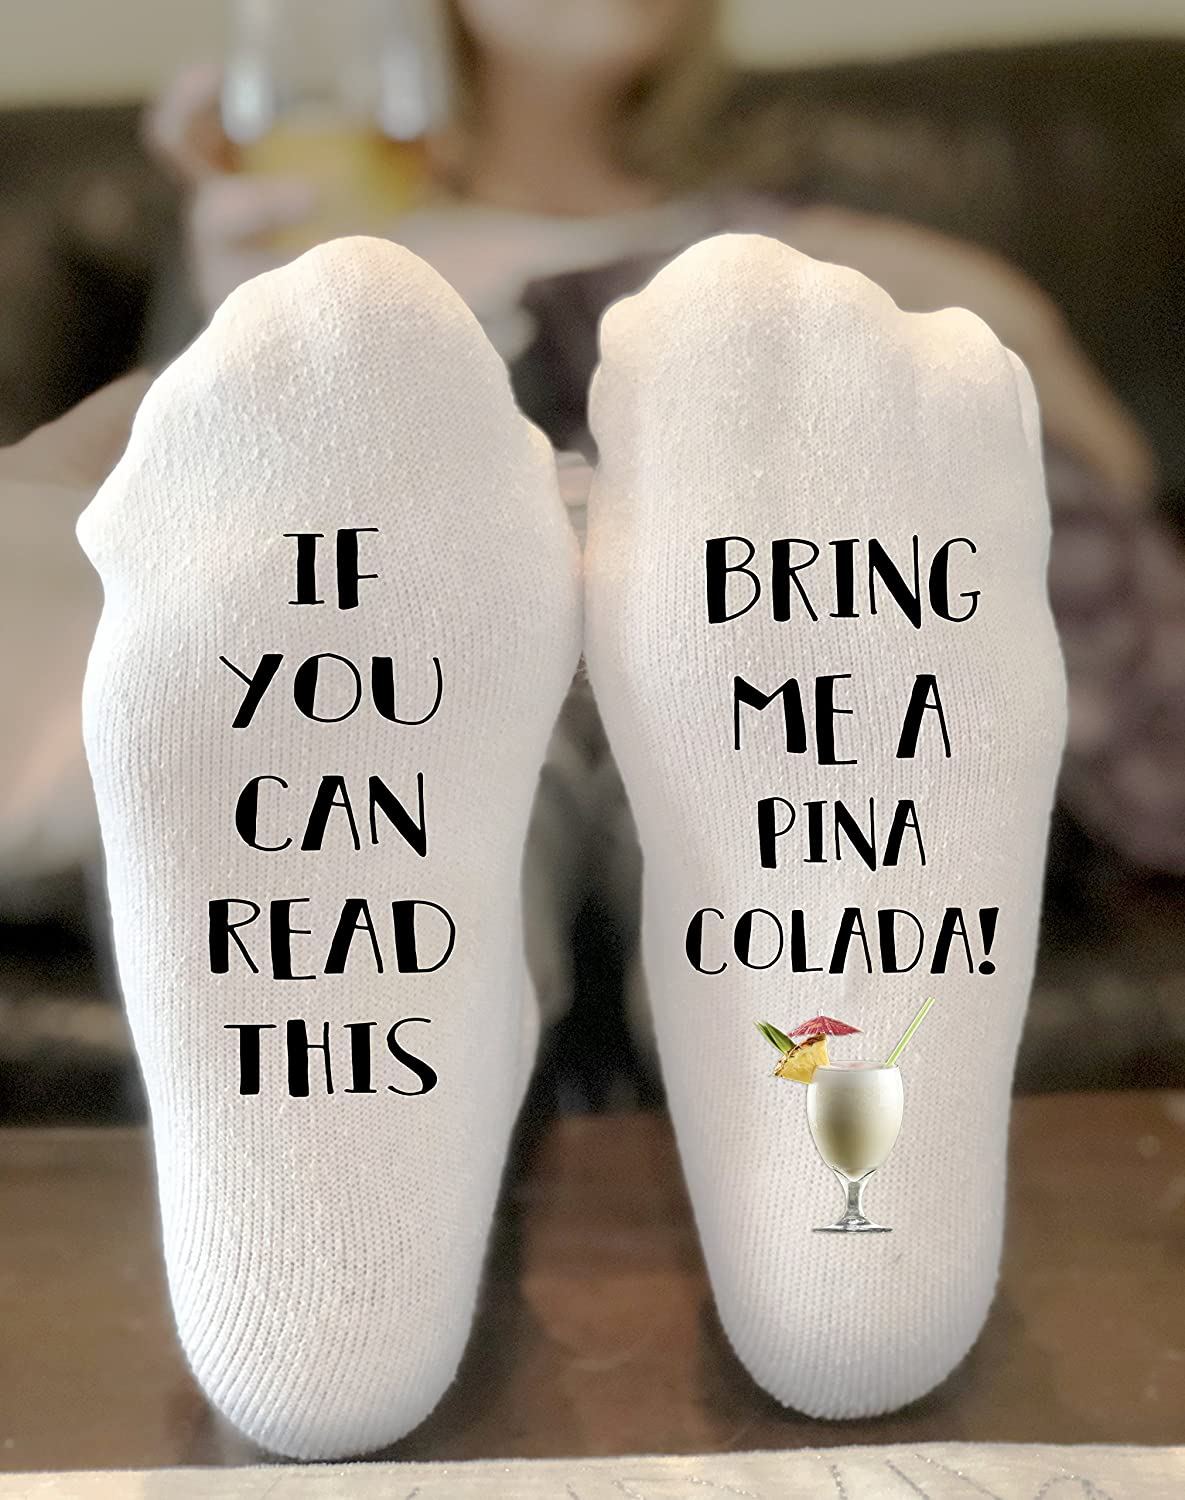 If You Can Read This Bring Me A Pina Colada Novelty Funky Crew Socks Men Women Christmas Gifts Cotton Slipper Socks